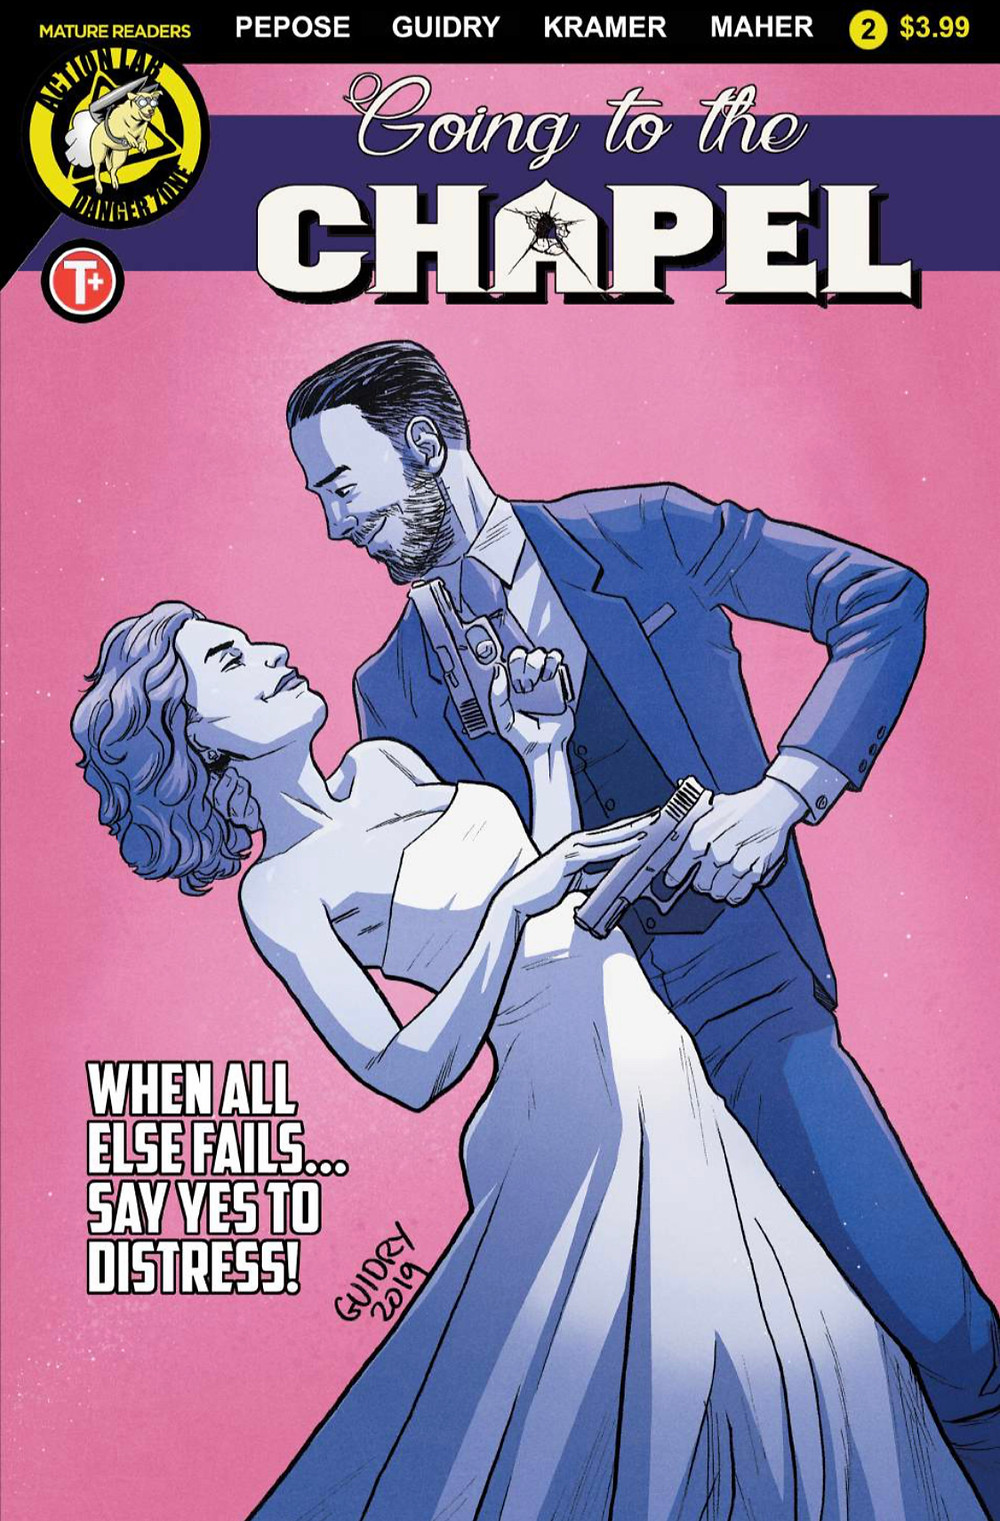 Going to the Chapel #2, cover, Action Lab Entertainment, Pepose/Guidry